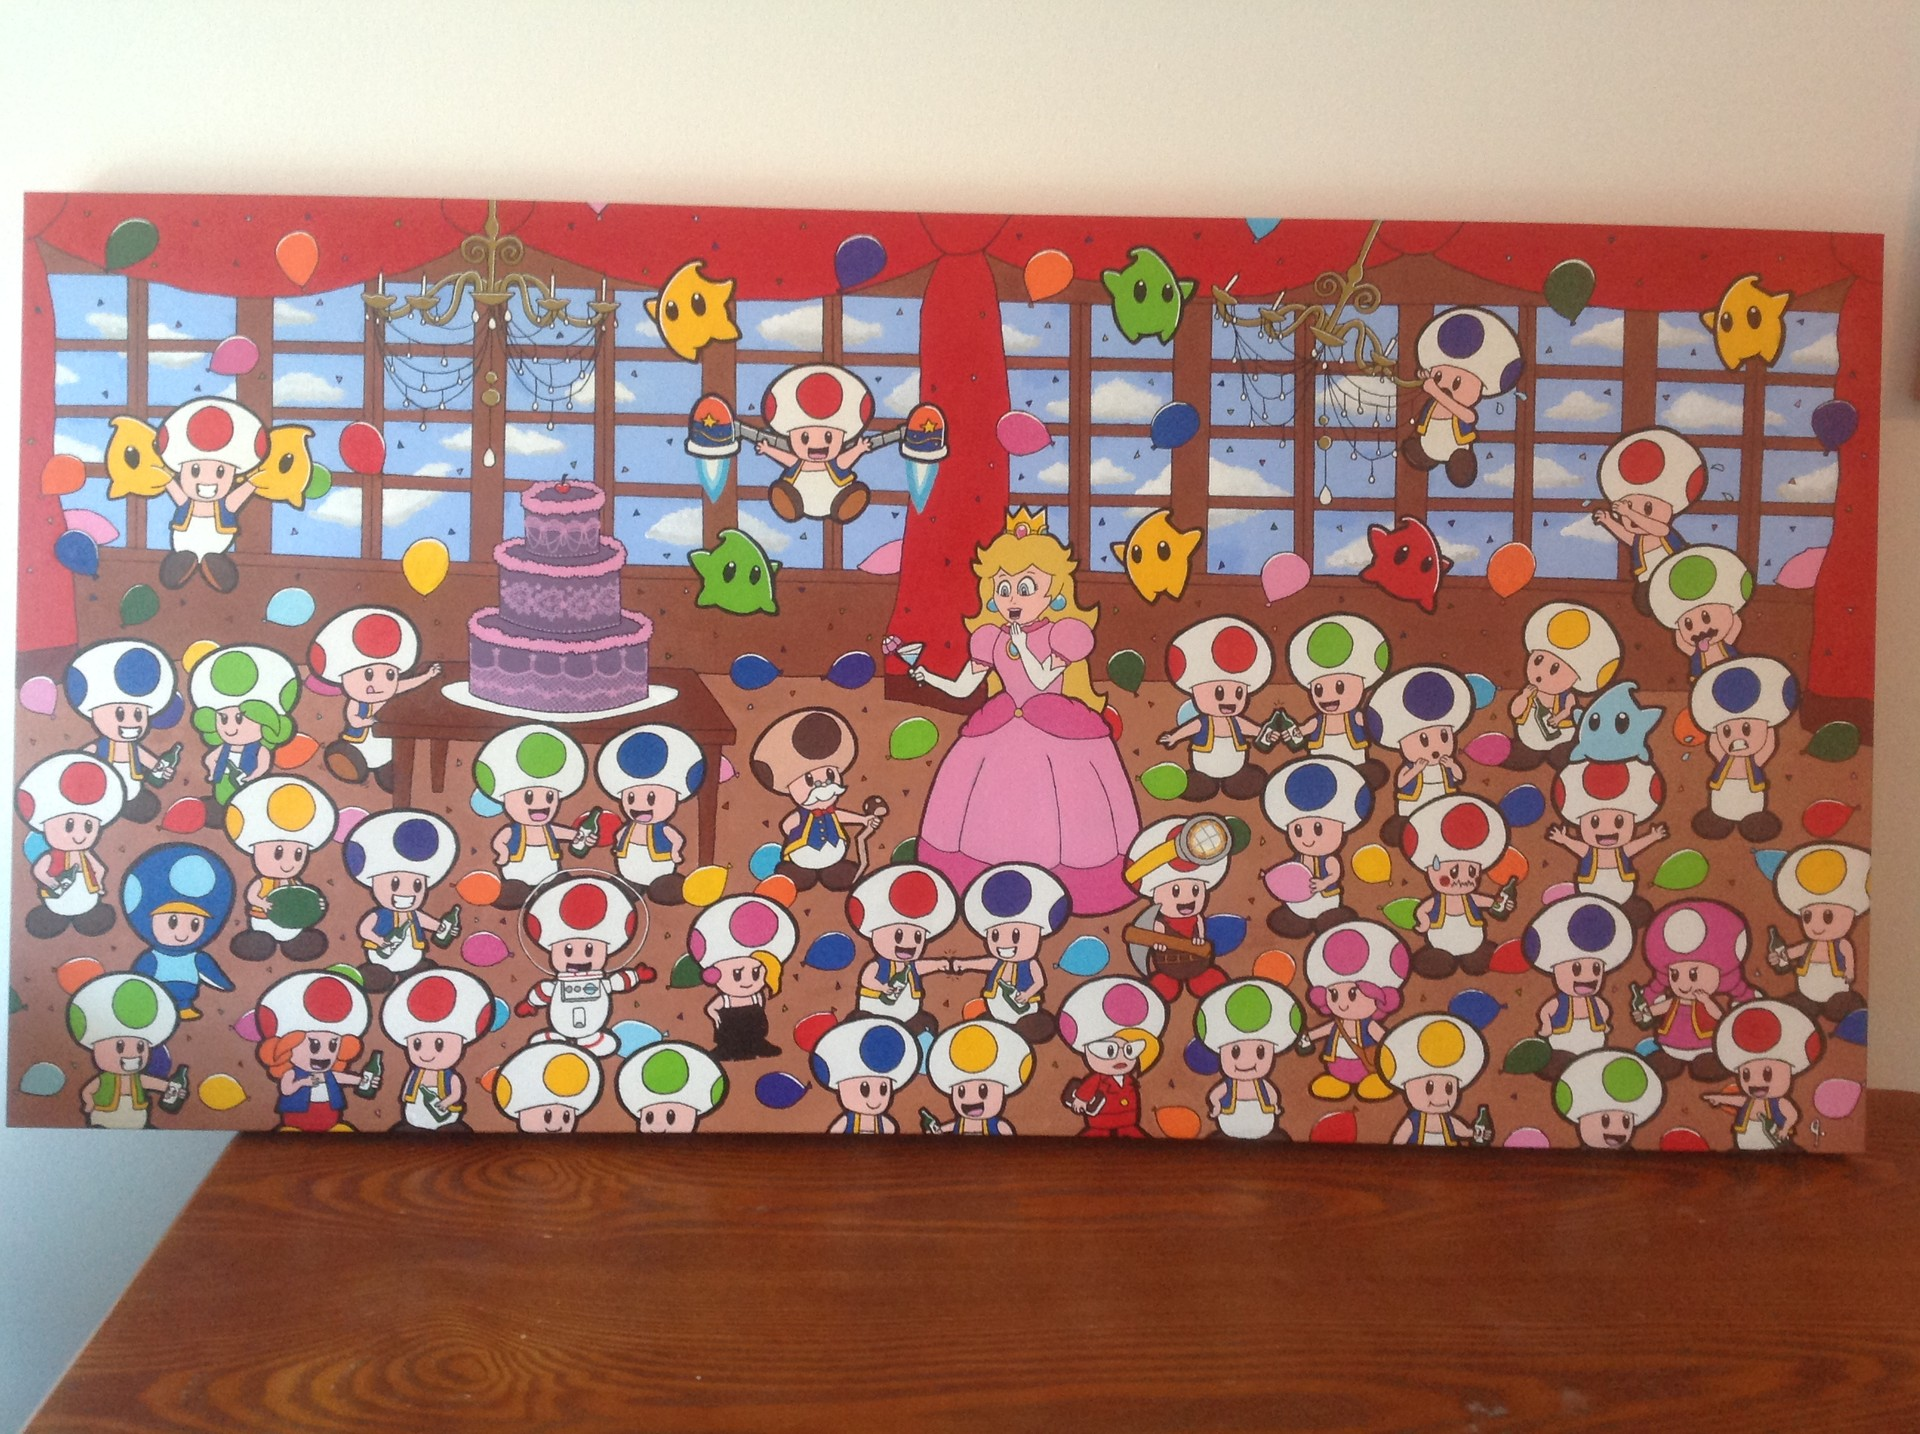 'Party in the Mushroom Kingdom'